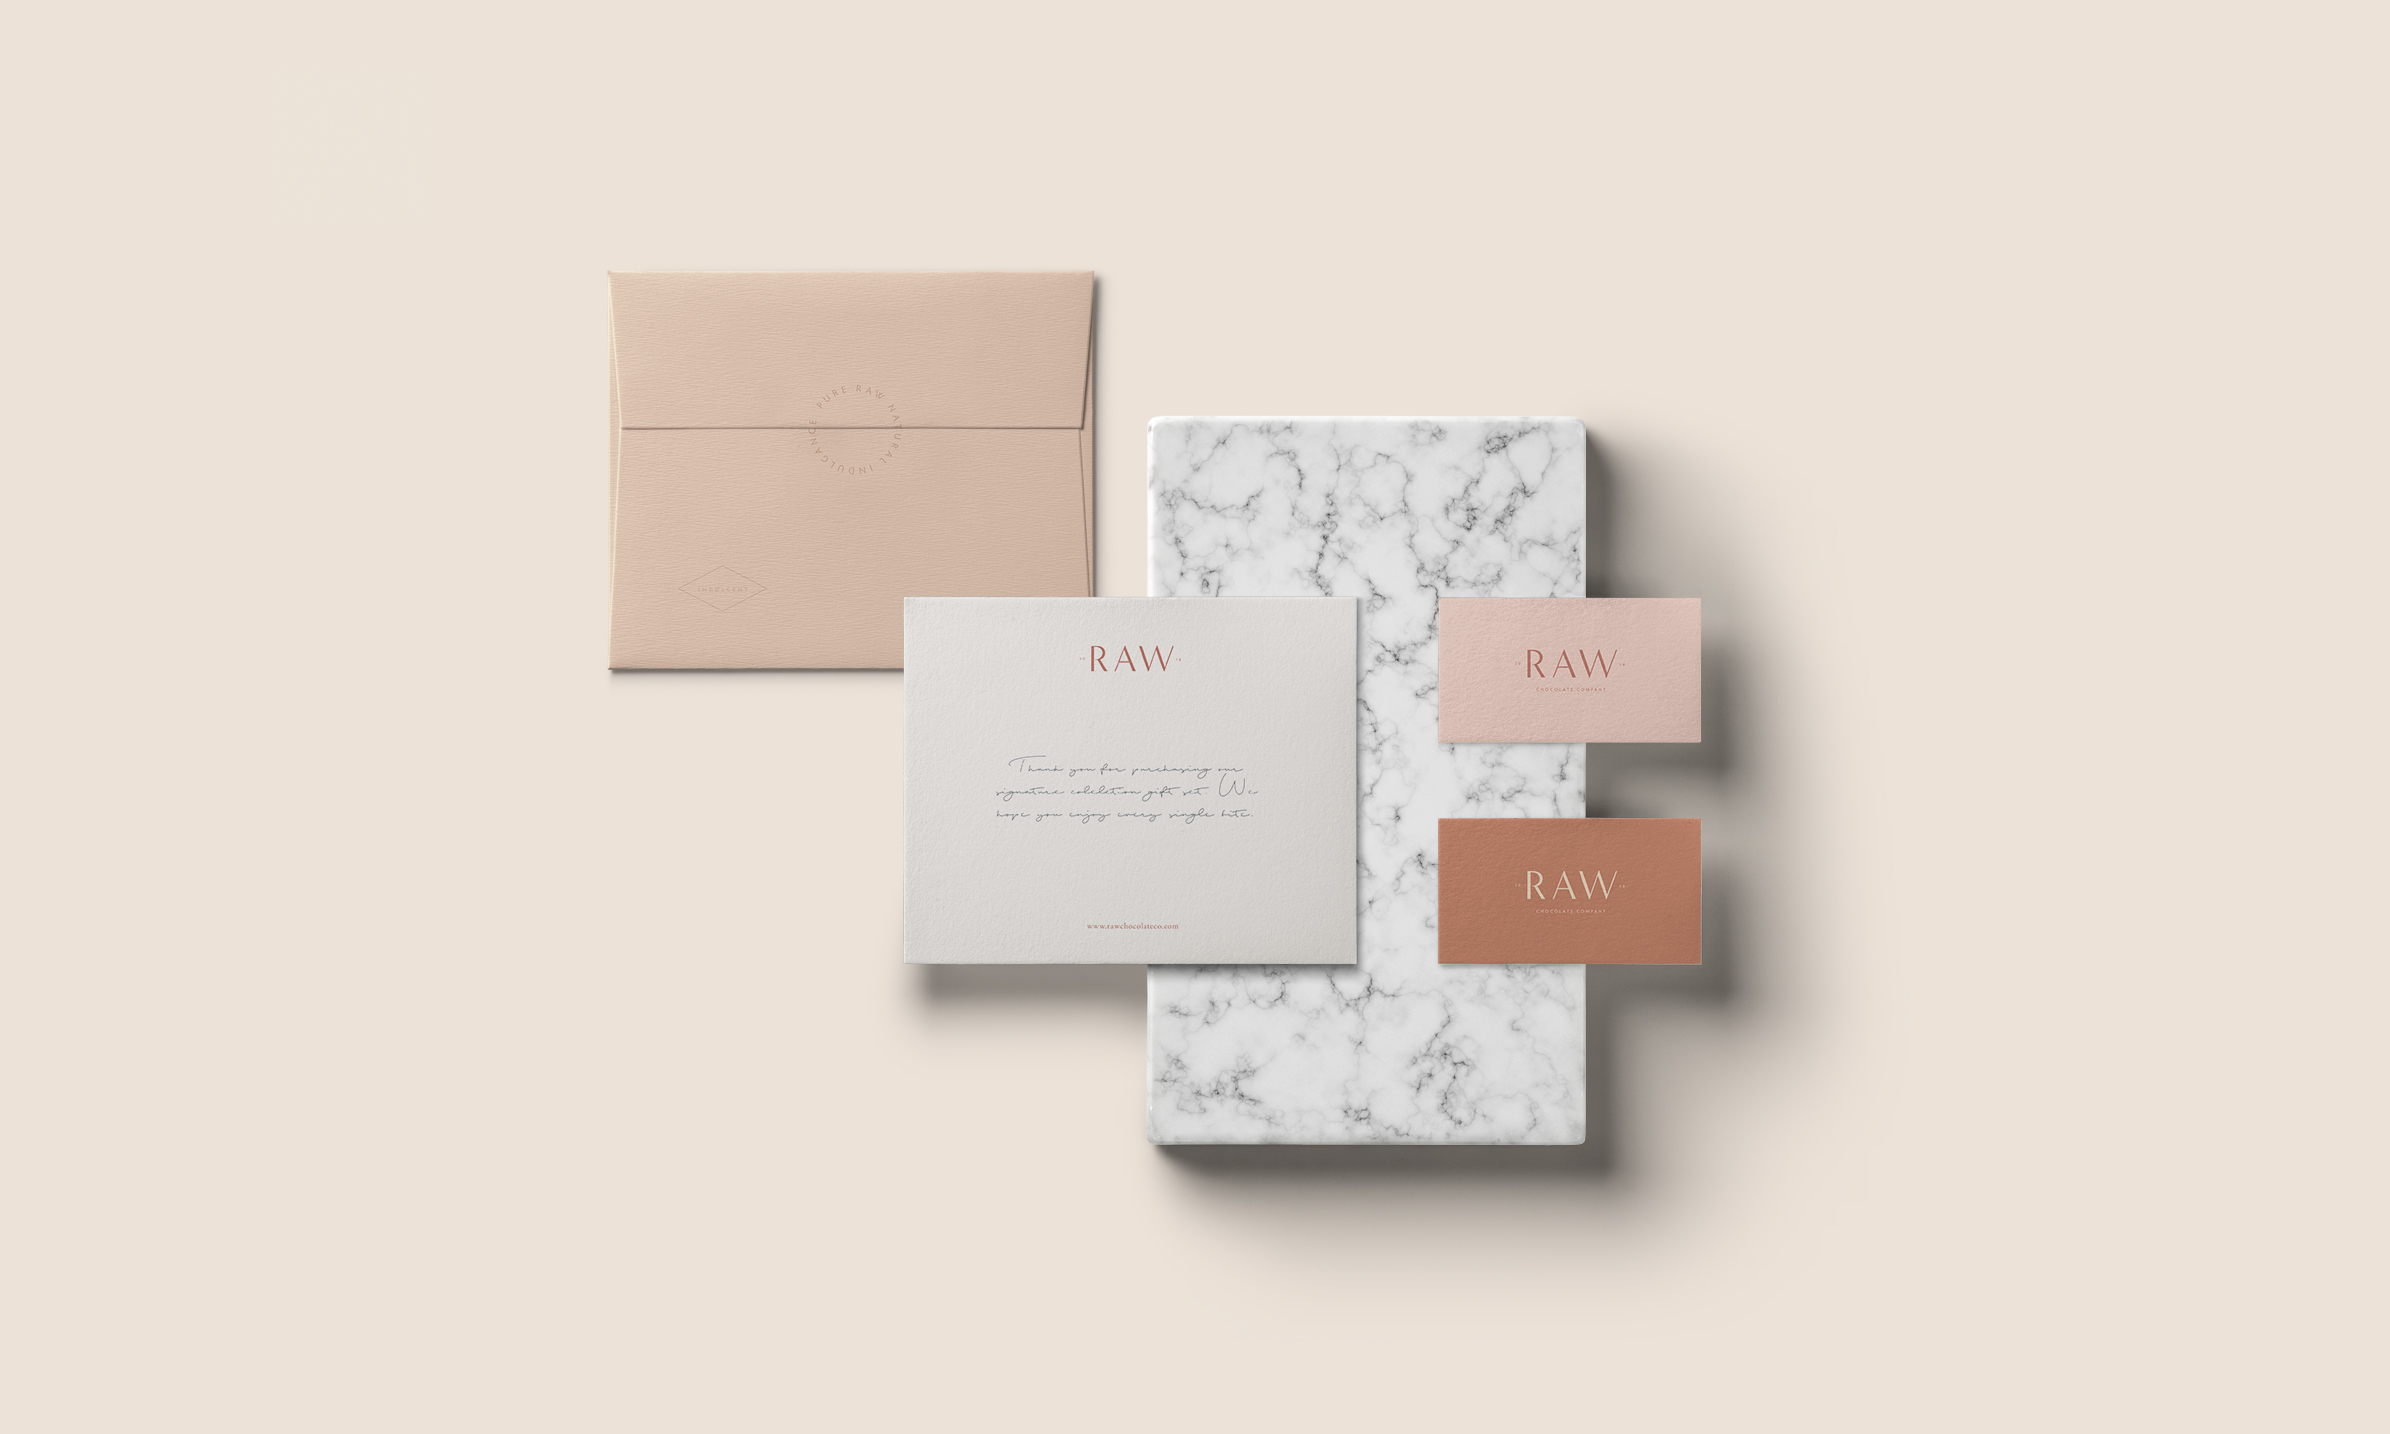 Studio Raw Mocks Stationery from Studio Collective